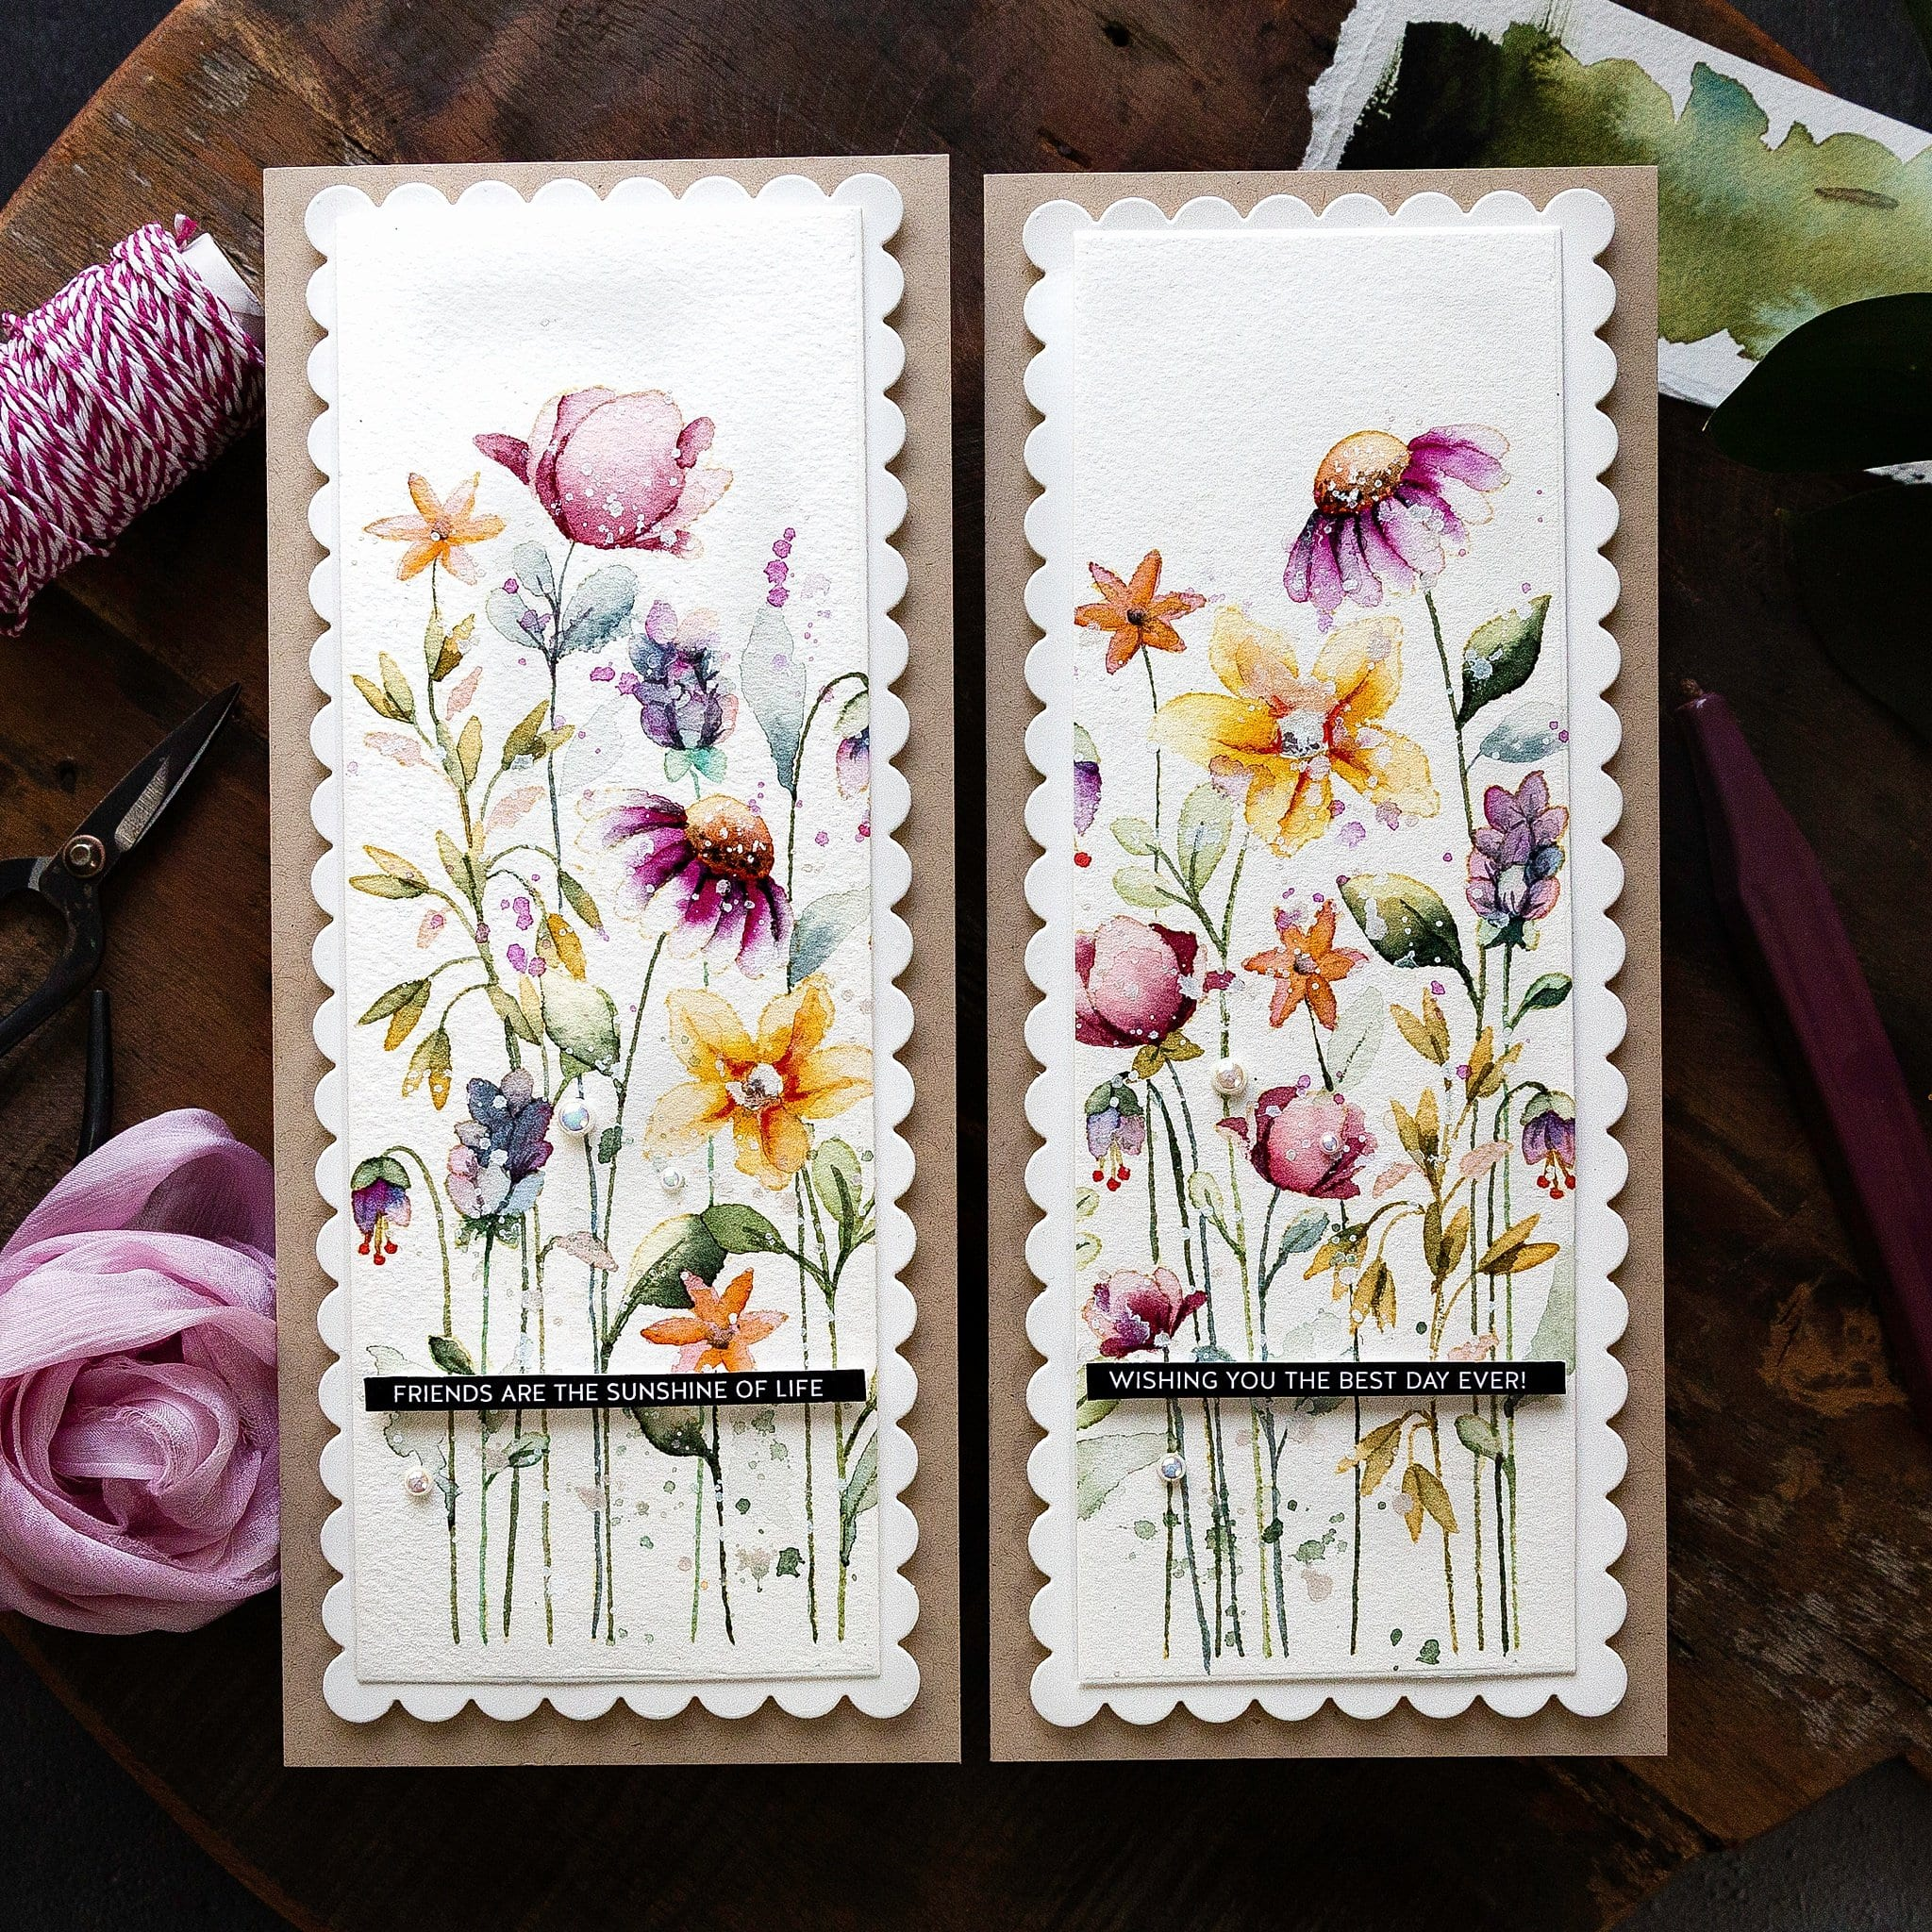 Video tutorial - watercoloured wildflower two-for-one handmade cards! Design by Debby Hughes using supplies from Simon Says Stamp #handmadecards #cardmaking #cardmakingideas #cardmakingtechniques  #cardmakingtutorials #handmadecardideas #simonsaysstamp